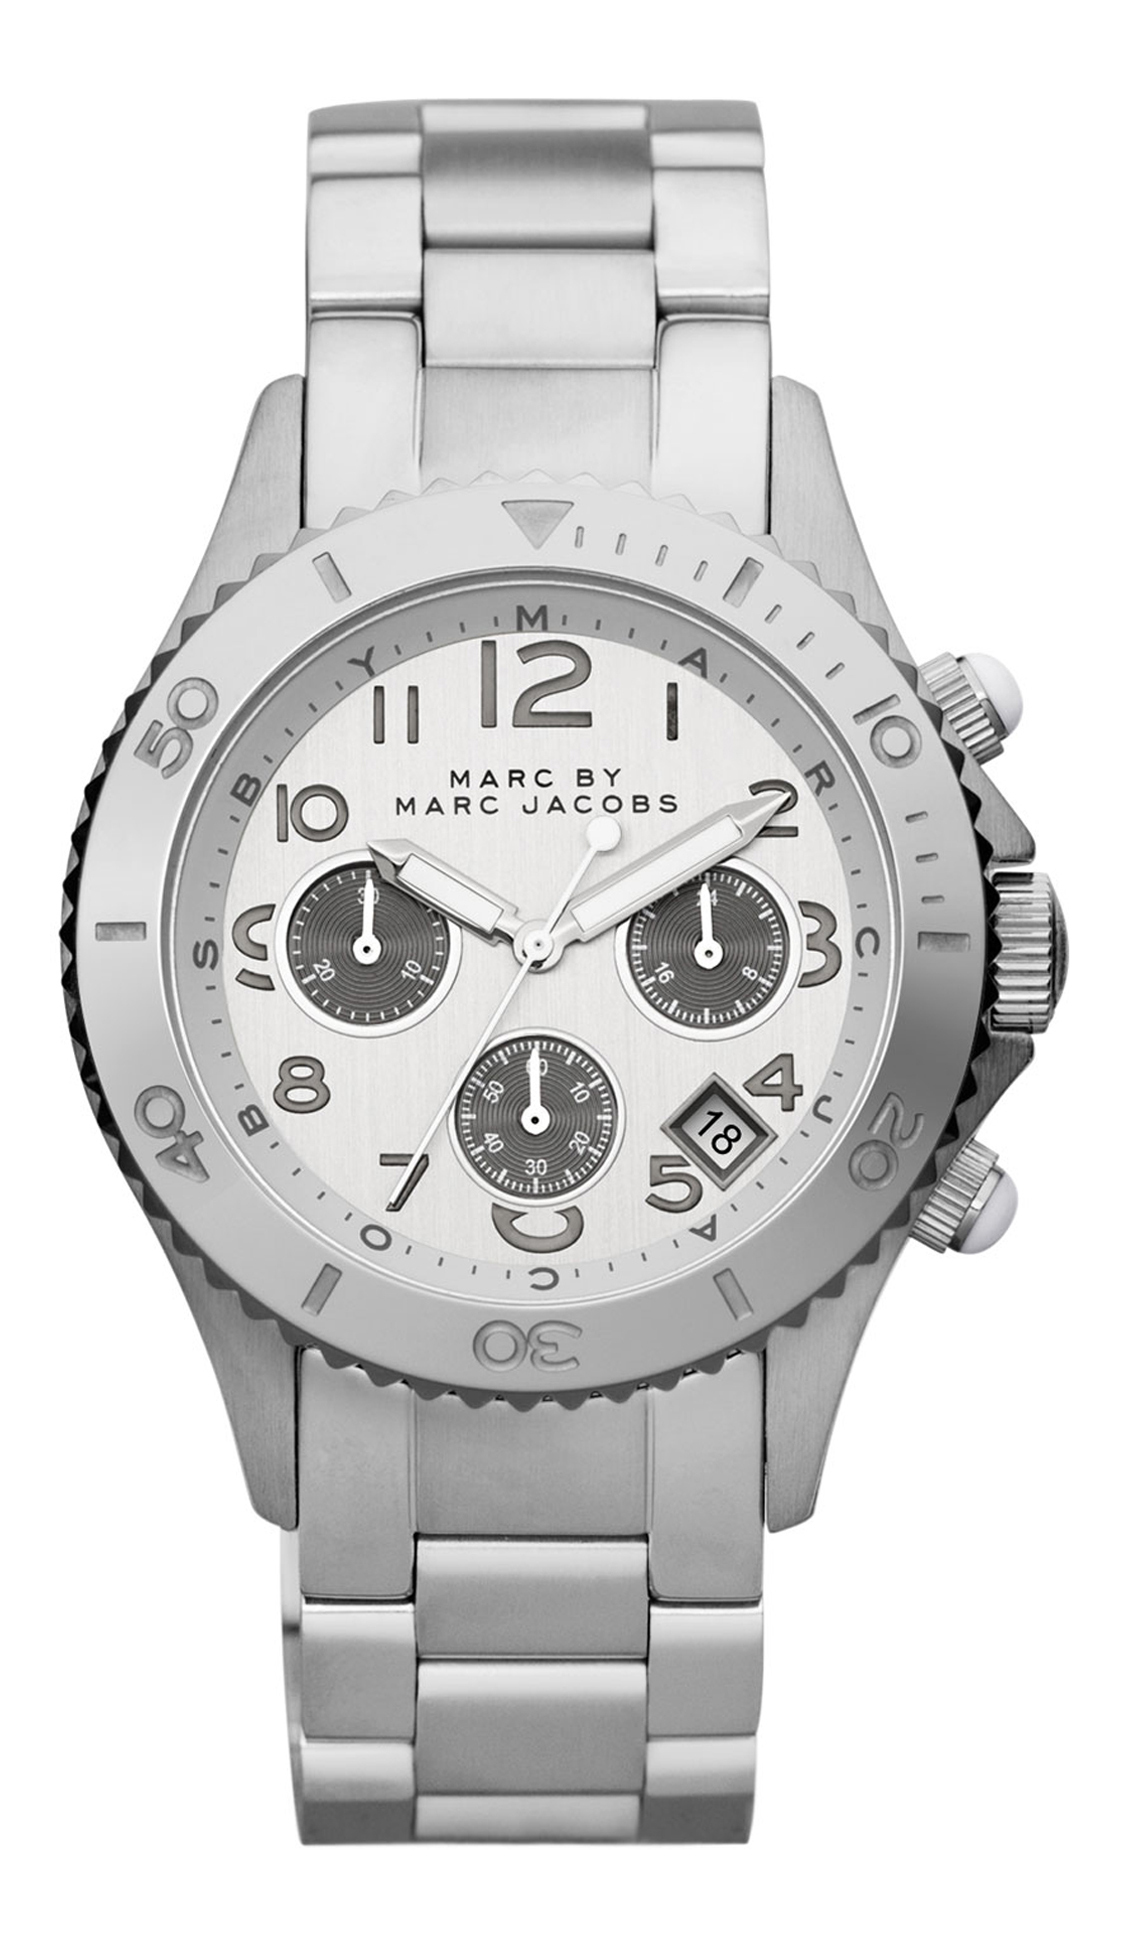 Marc by Marc Jacobs Rock Chrono Damklocka MBM3155 Silverfärgad/Stål Ø40 - Marc by Marc Jacobs